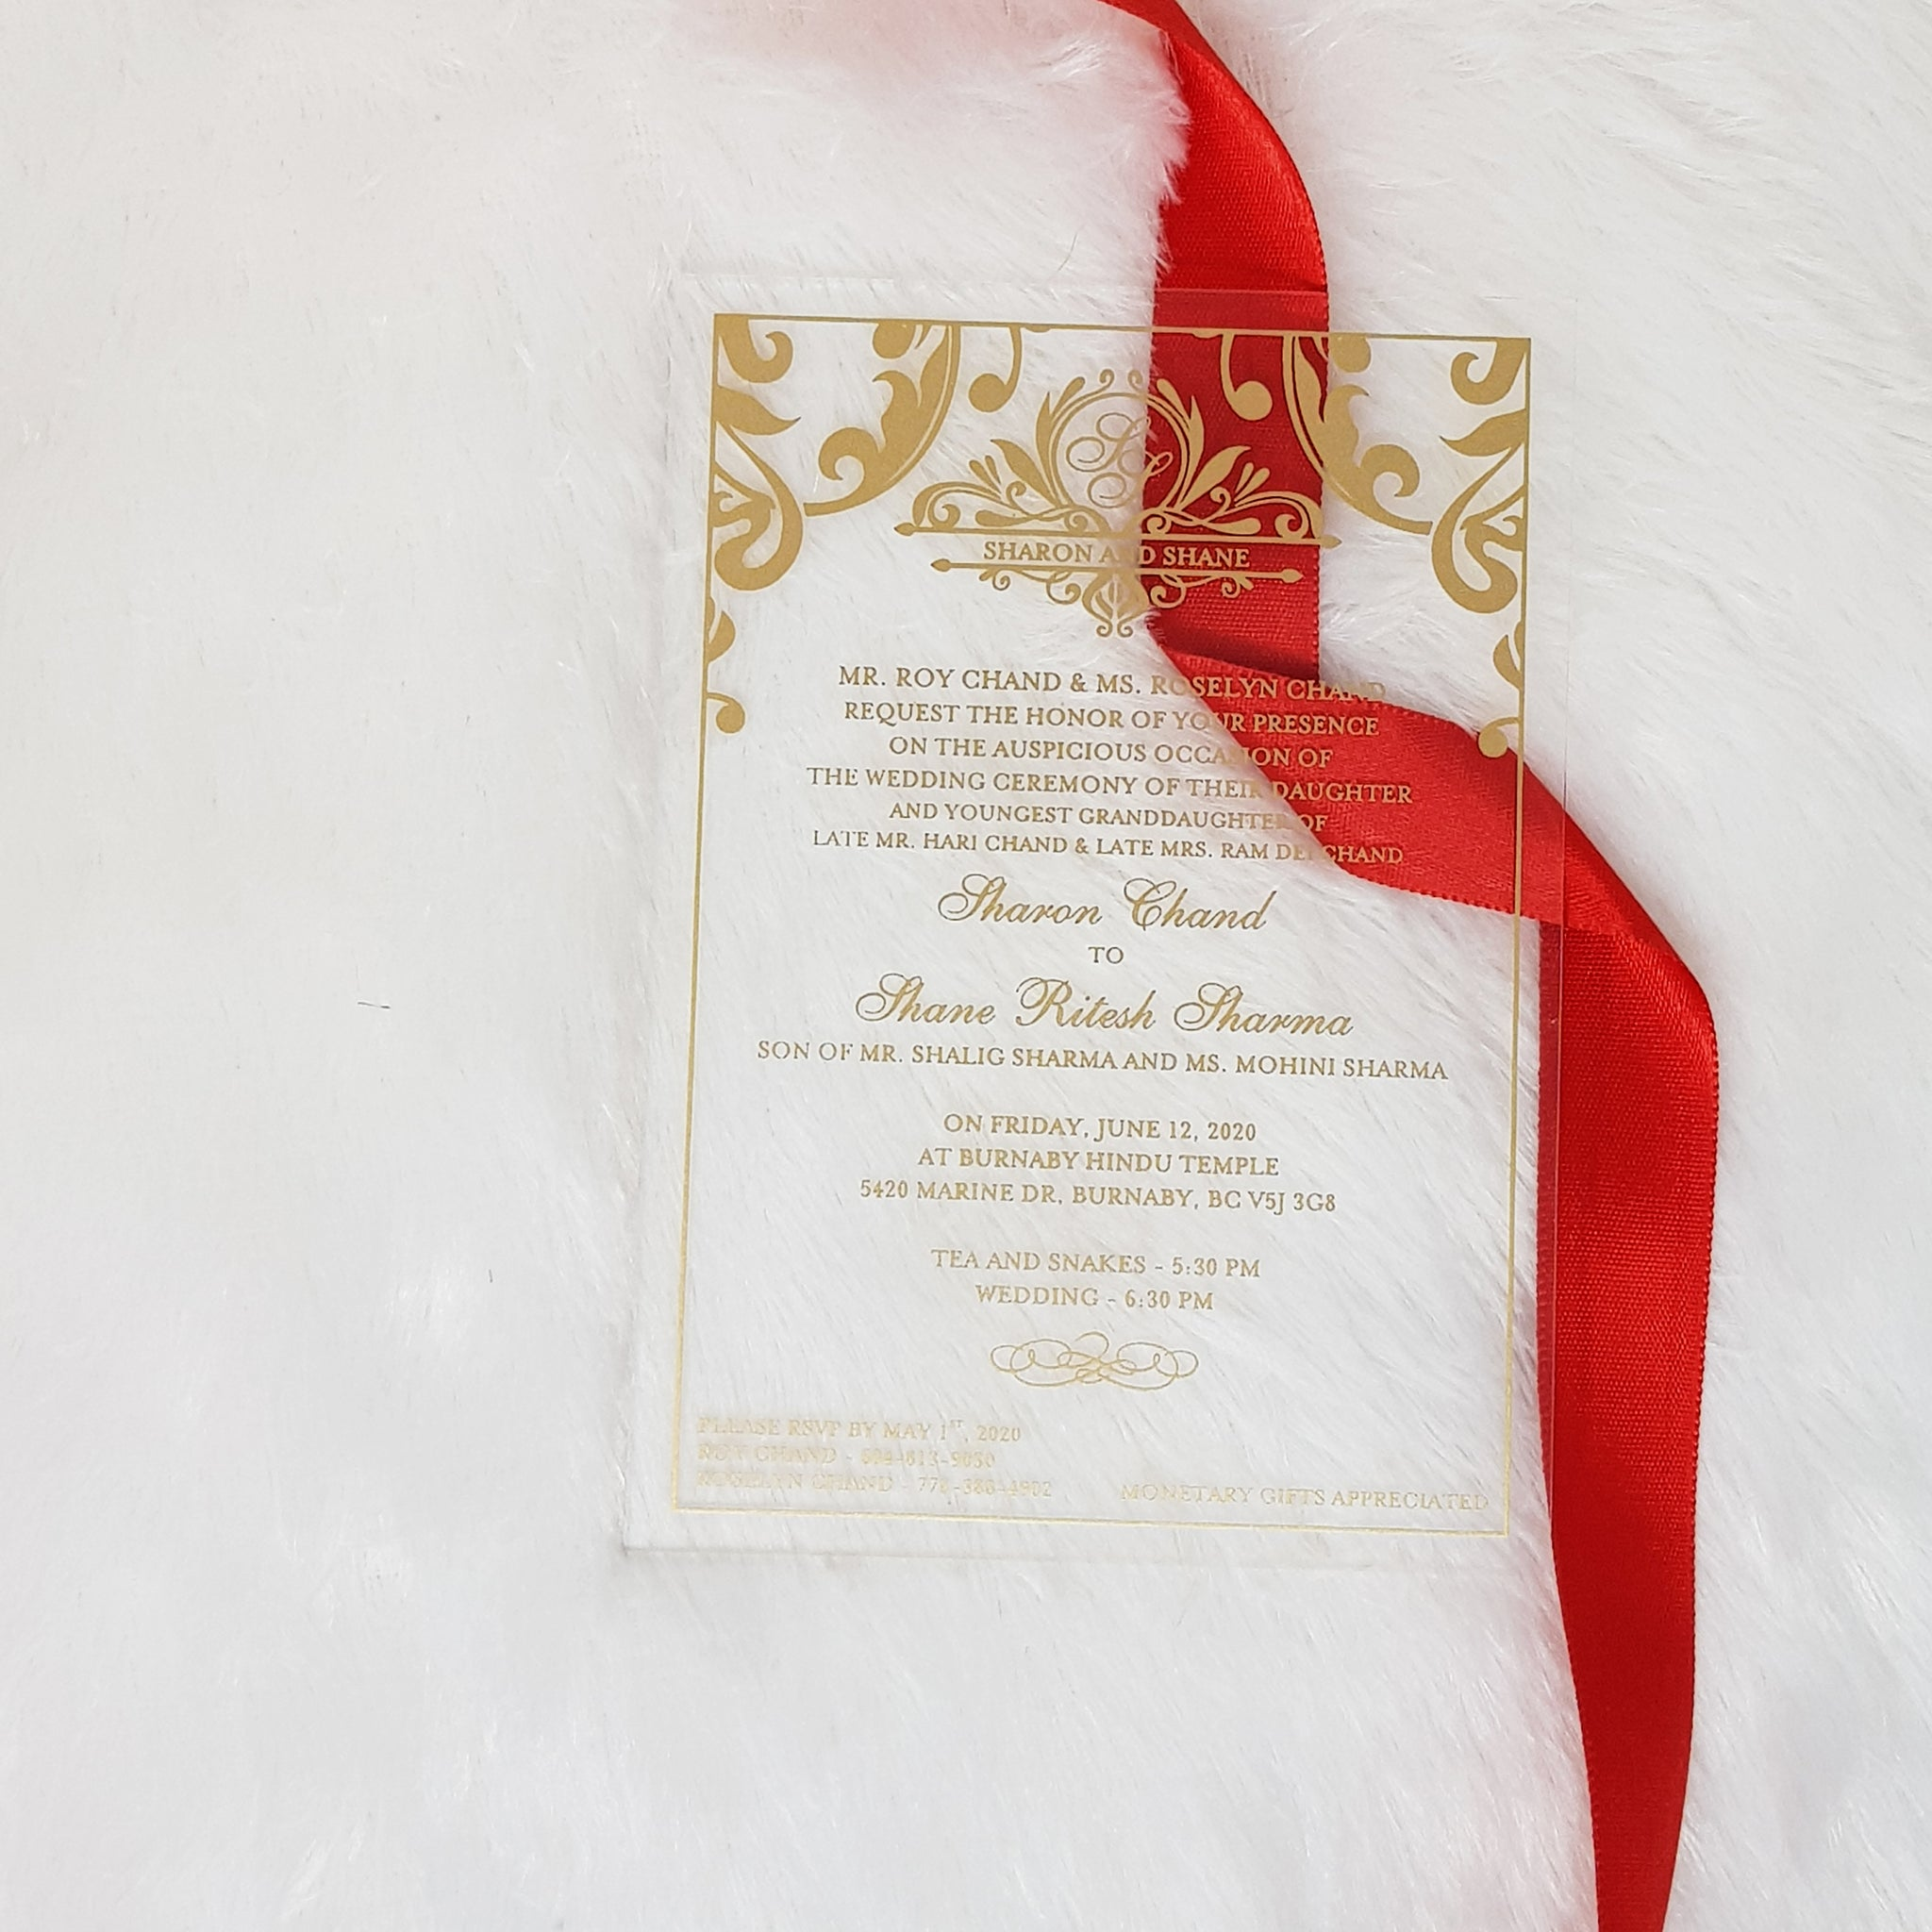 Clear Invitation, Transparent Invitation for Wedding with Gold Print